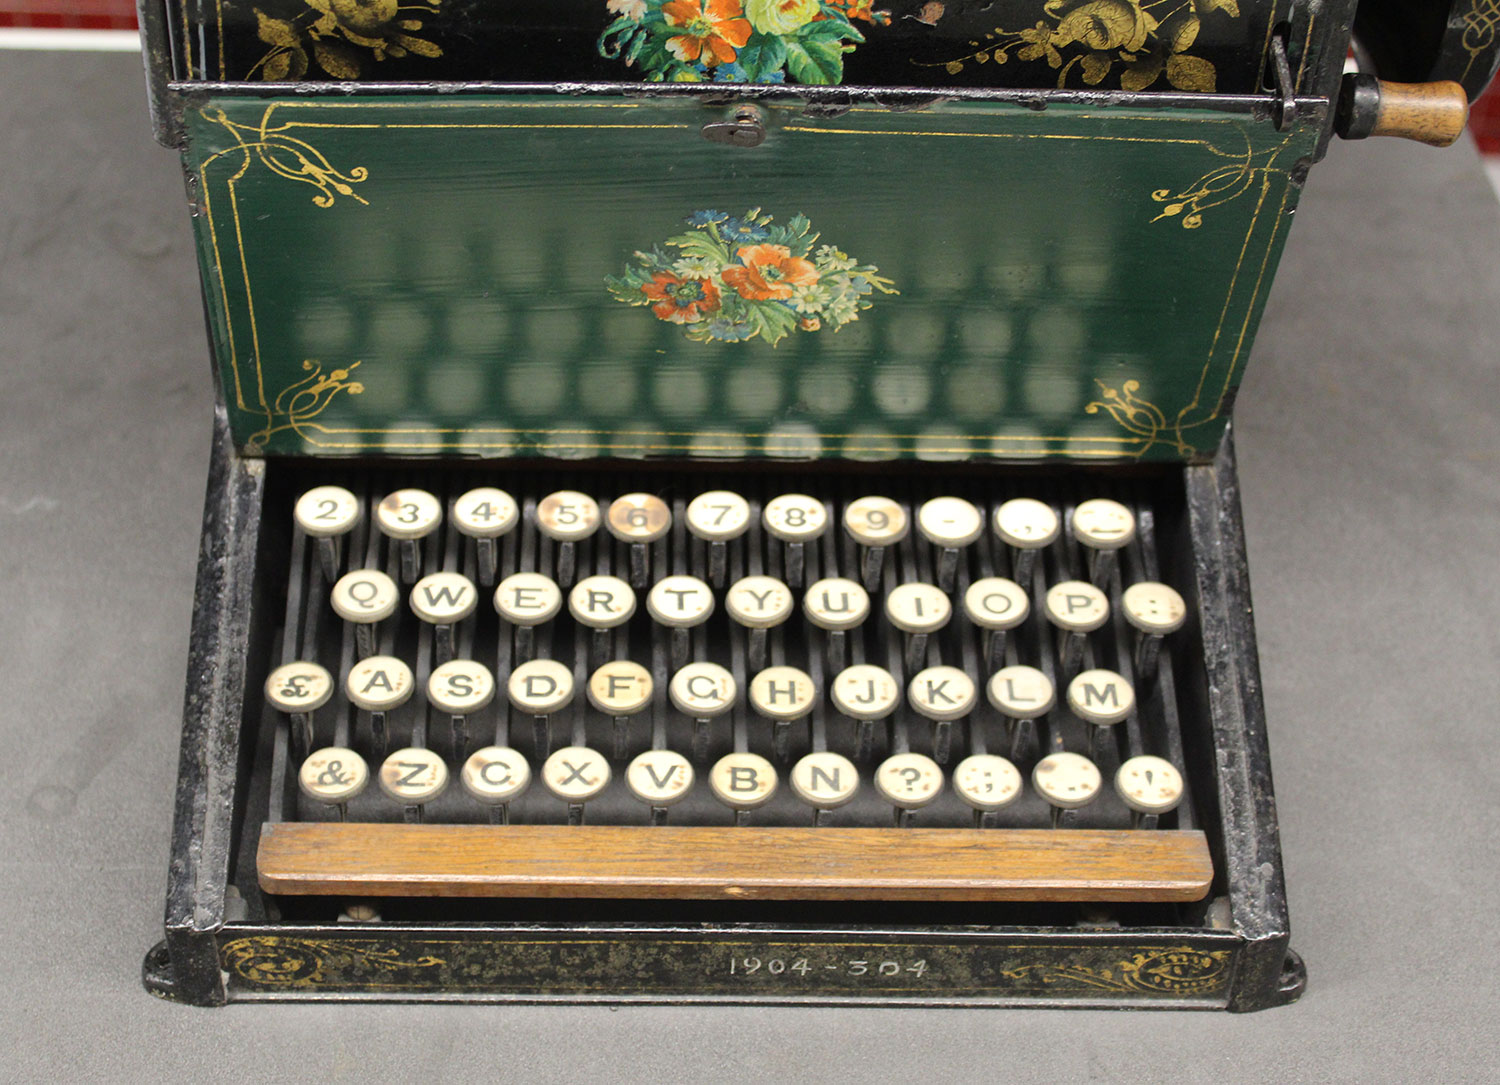 The beautifully decorated keyboard cover which reveals the QWERTY arrangement